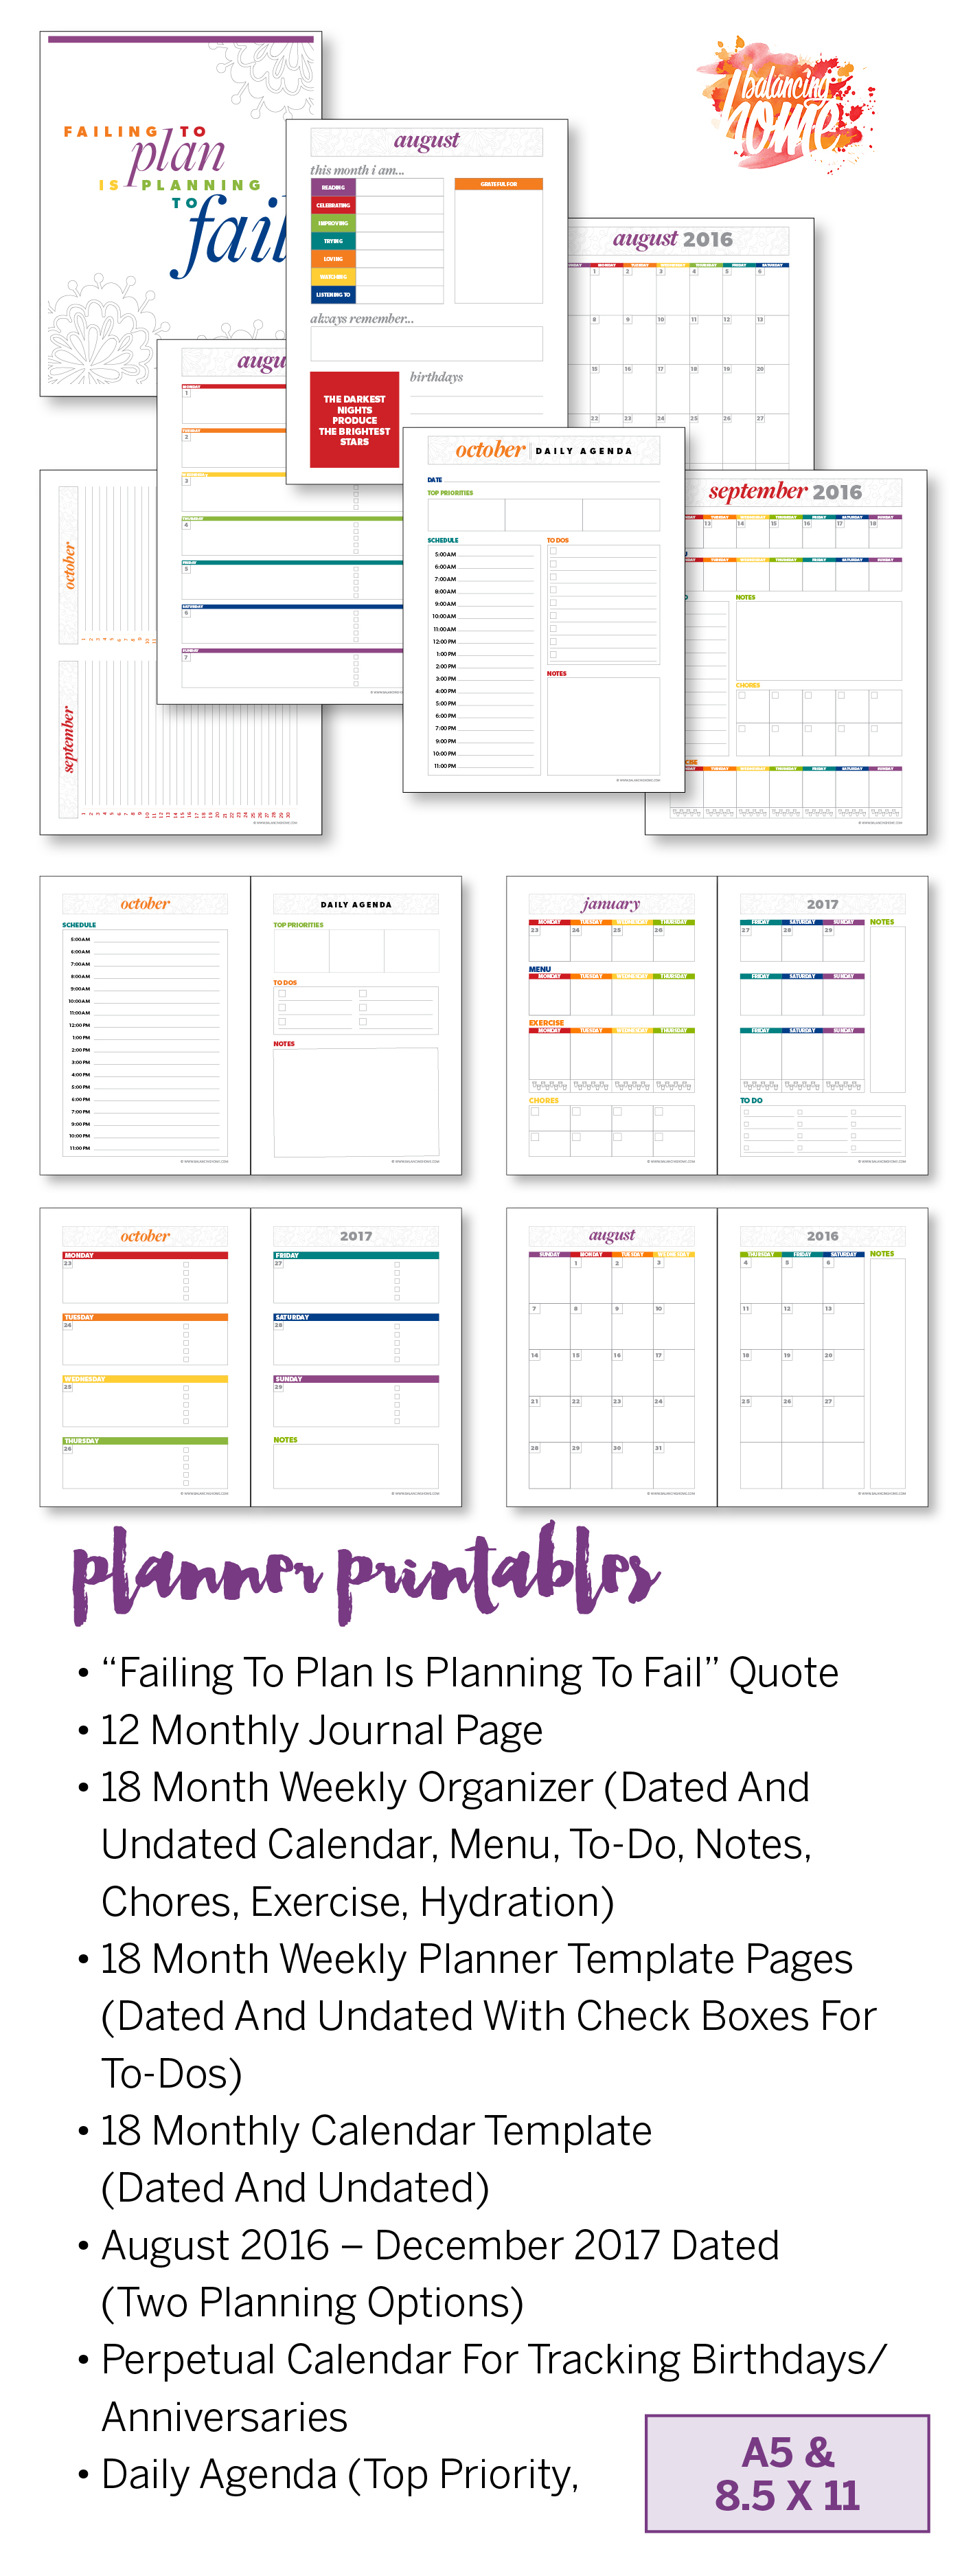 Planner printables in dated and undated, 8.5x11 and A5 size